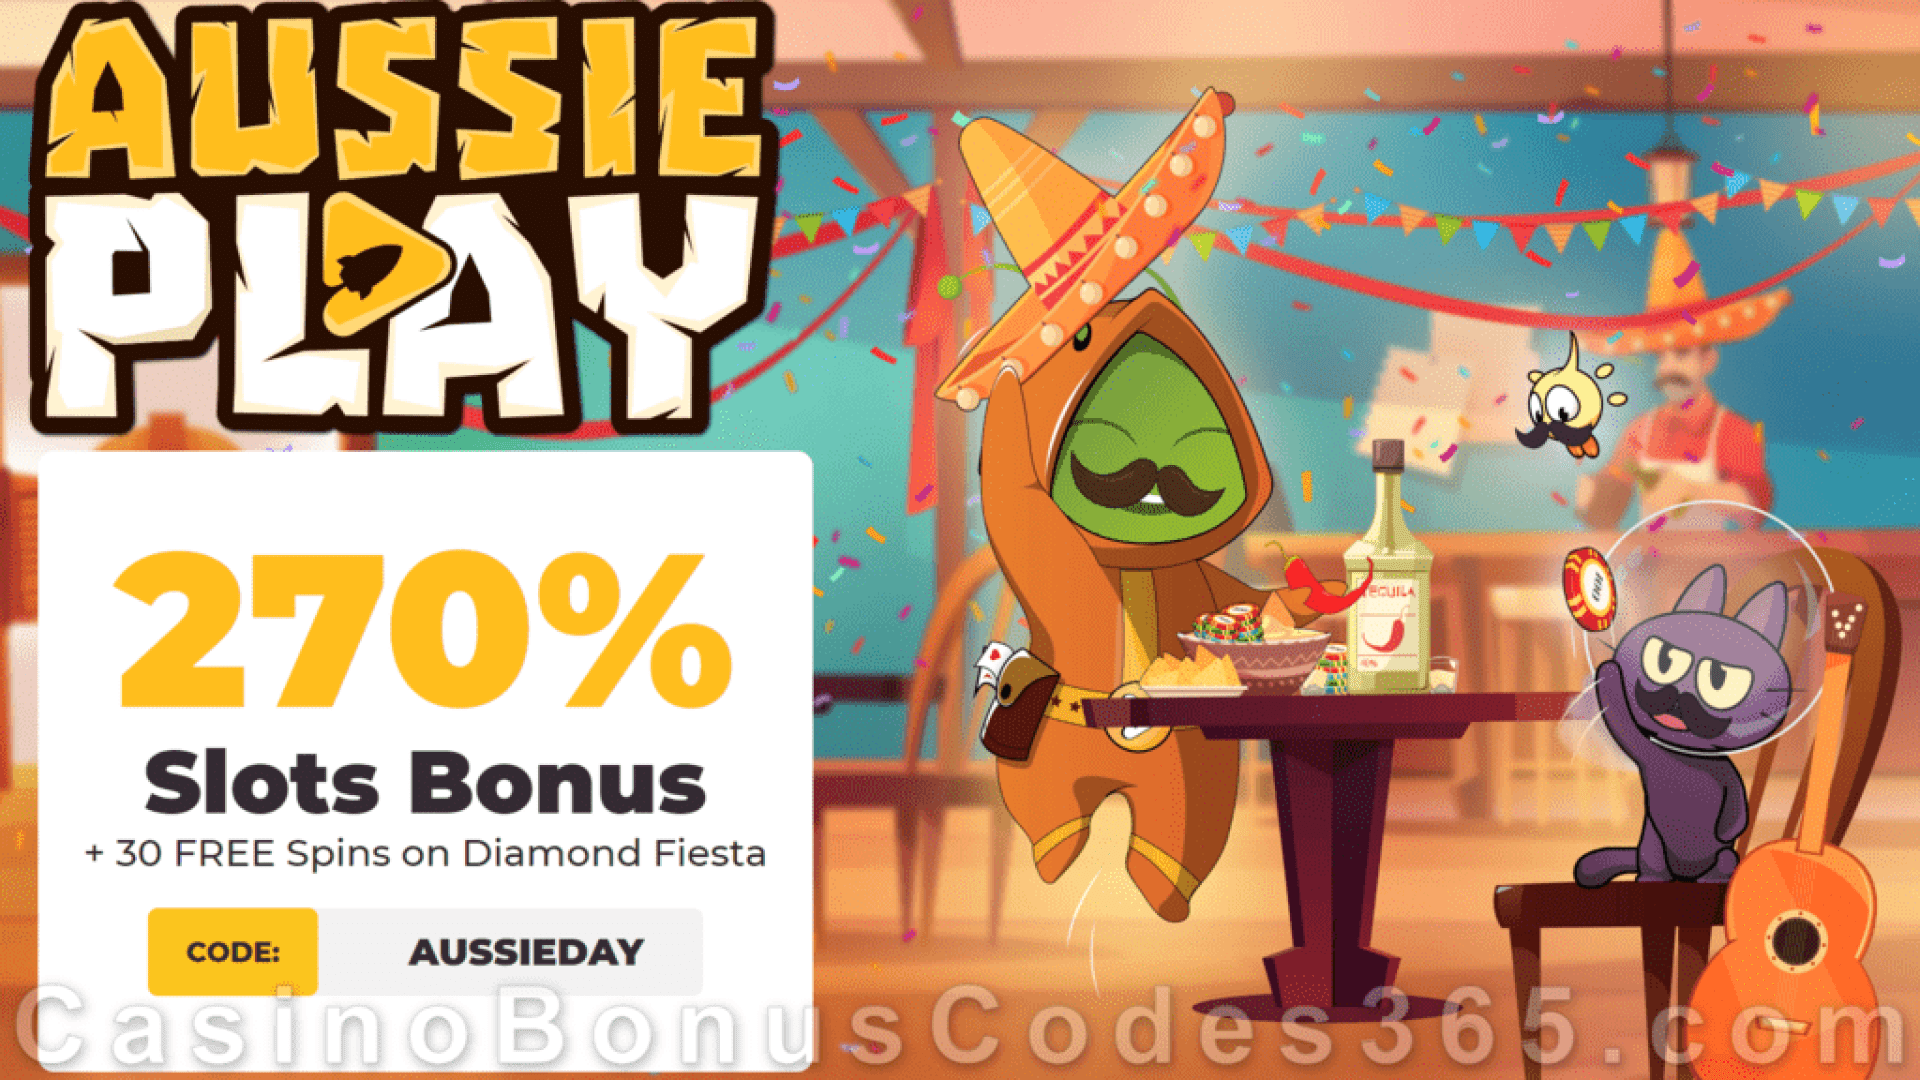 AussiePlay Casino 270% Match Pokies Bonus plus 30 FREE Diamond Fiesta Spins New RTG Game Welcome Offer